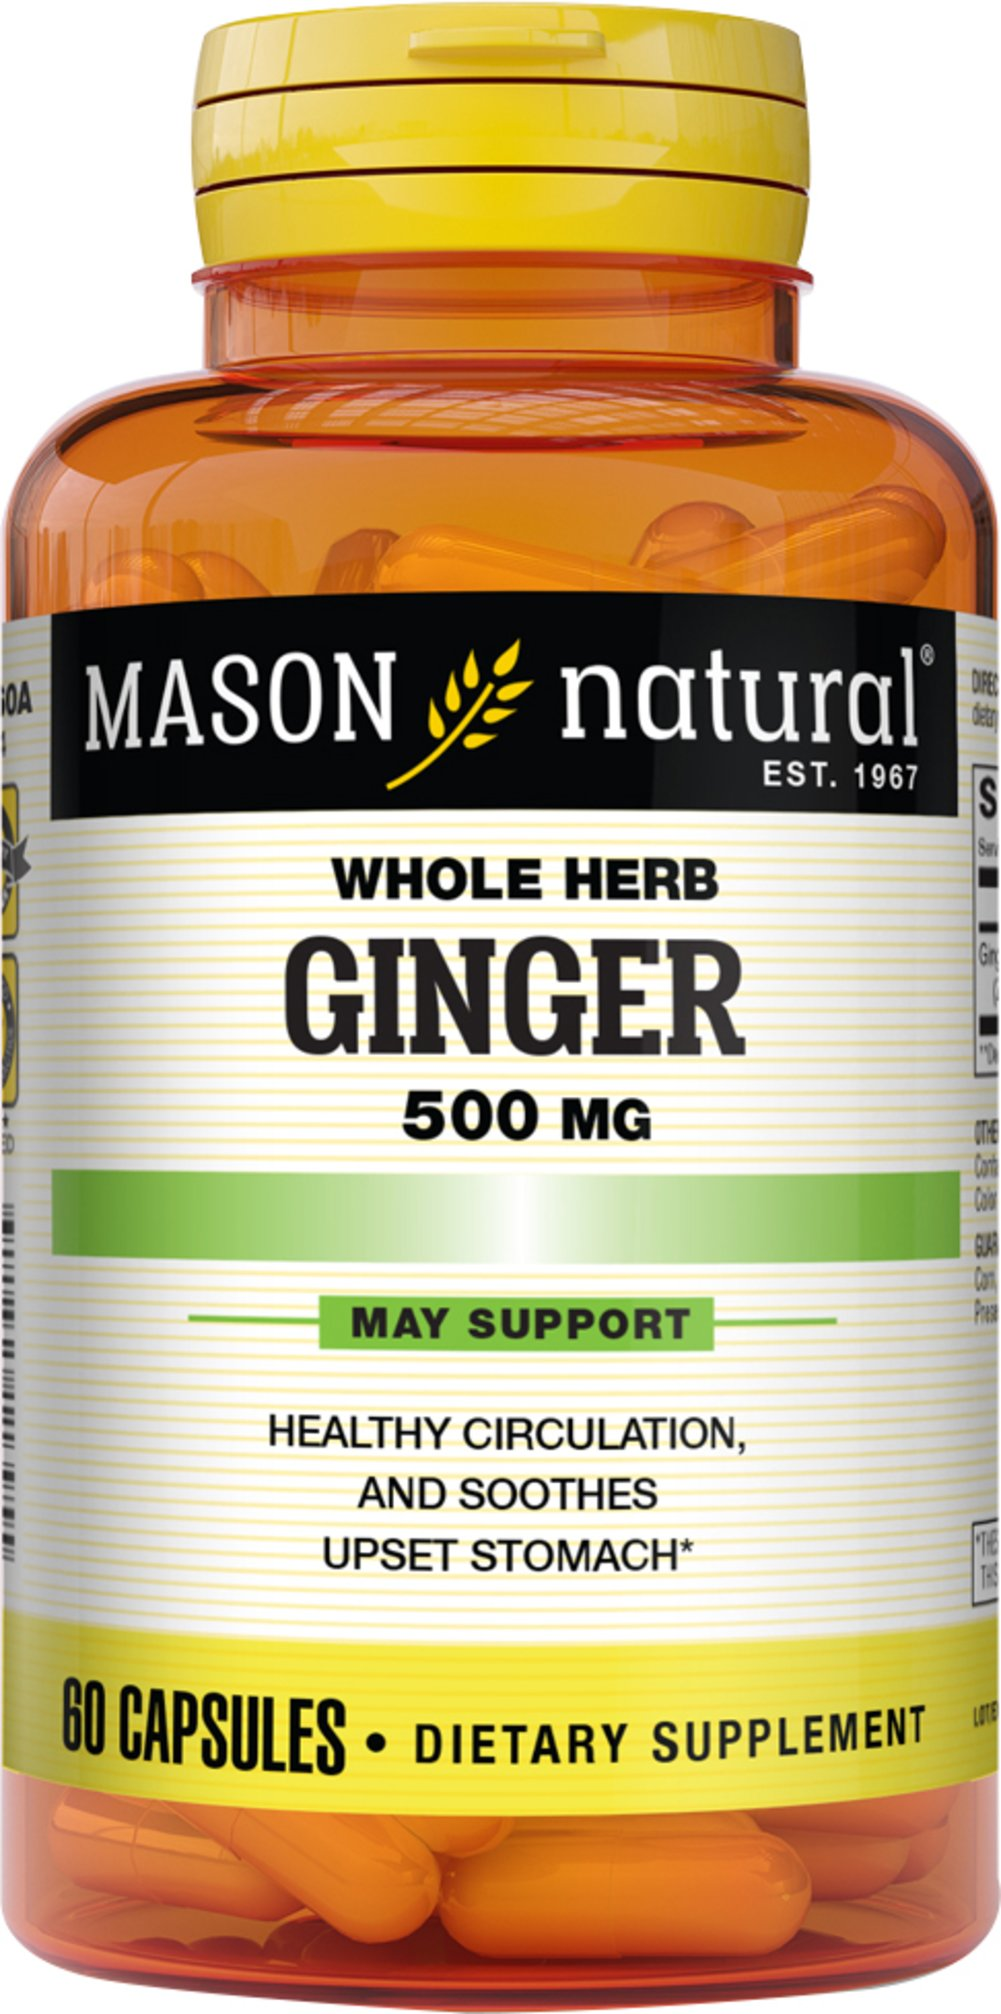 Ginger 500 mg  60 Capsules 500 mg $4.29